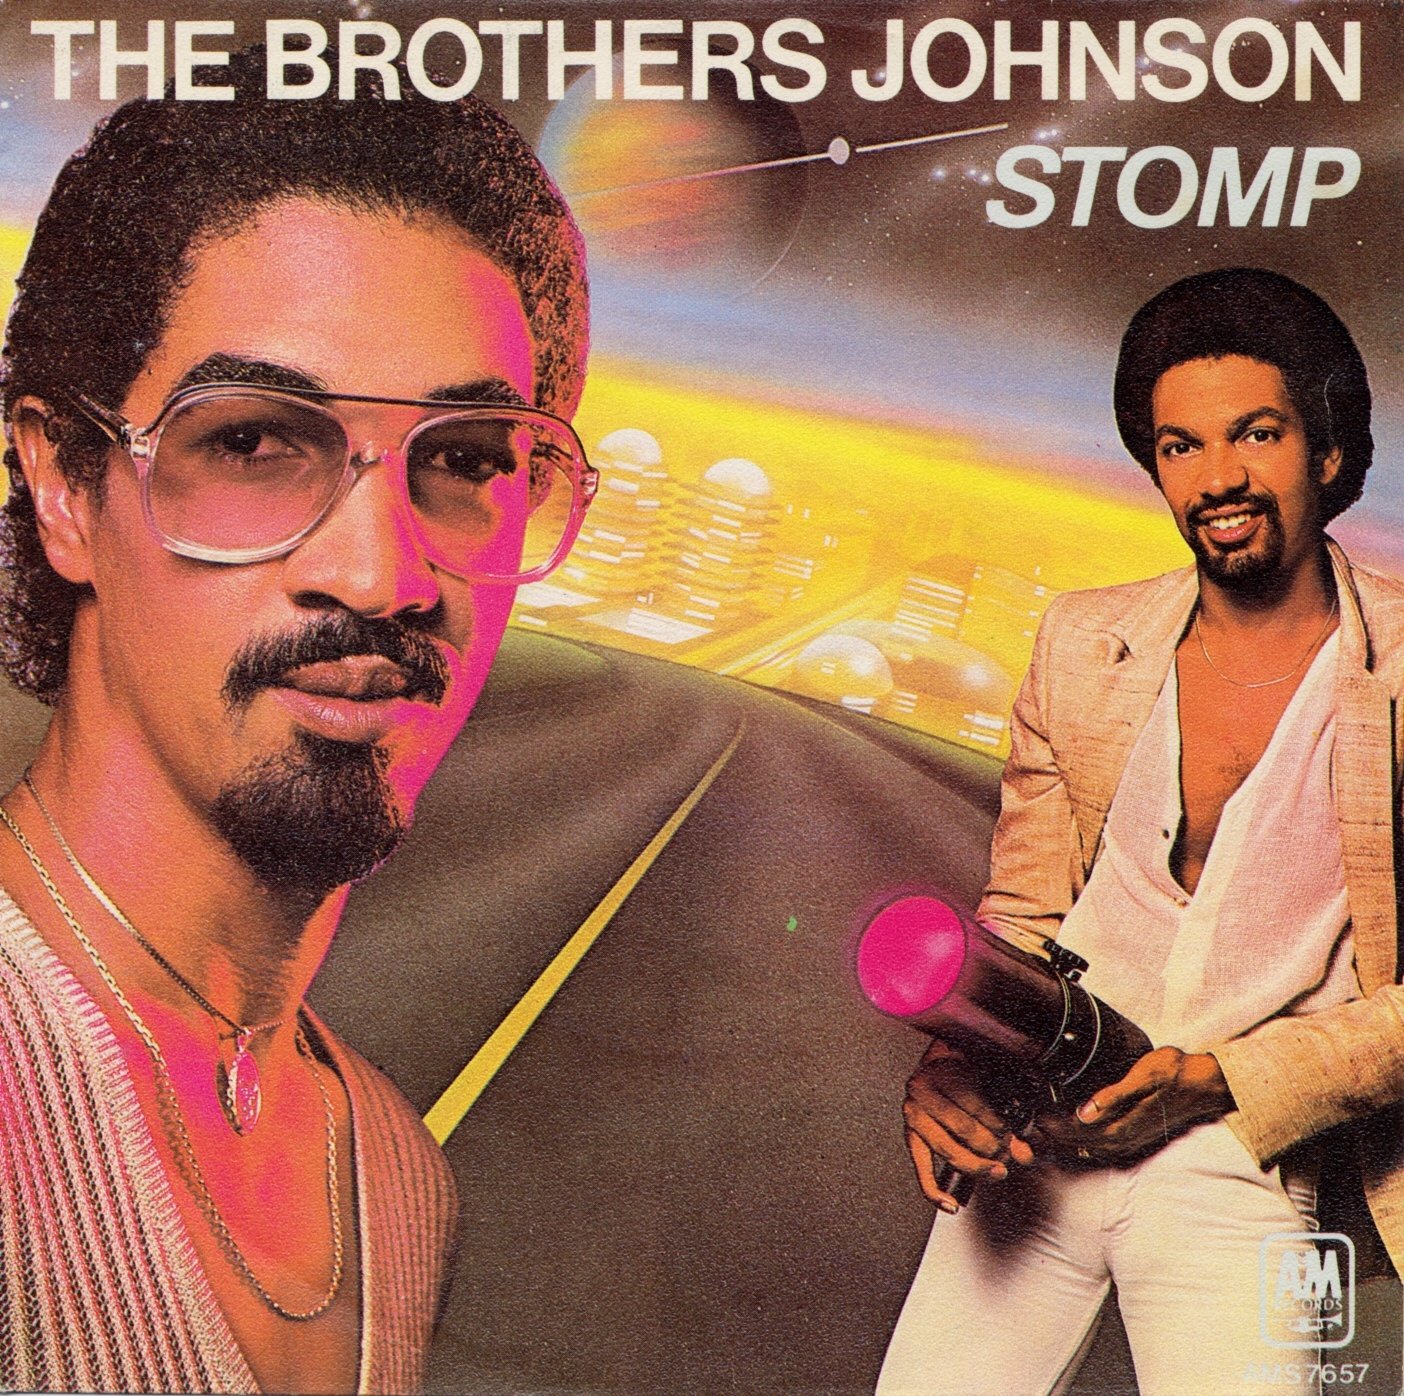 Stomp (Foto: The Brothers Johnson)